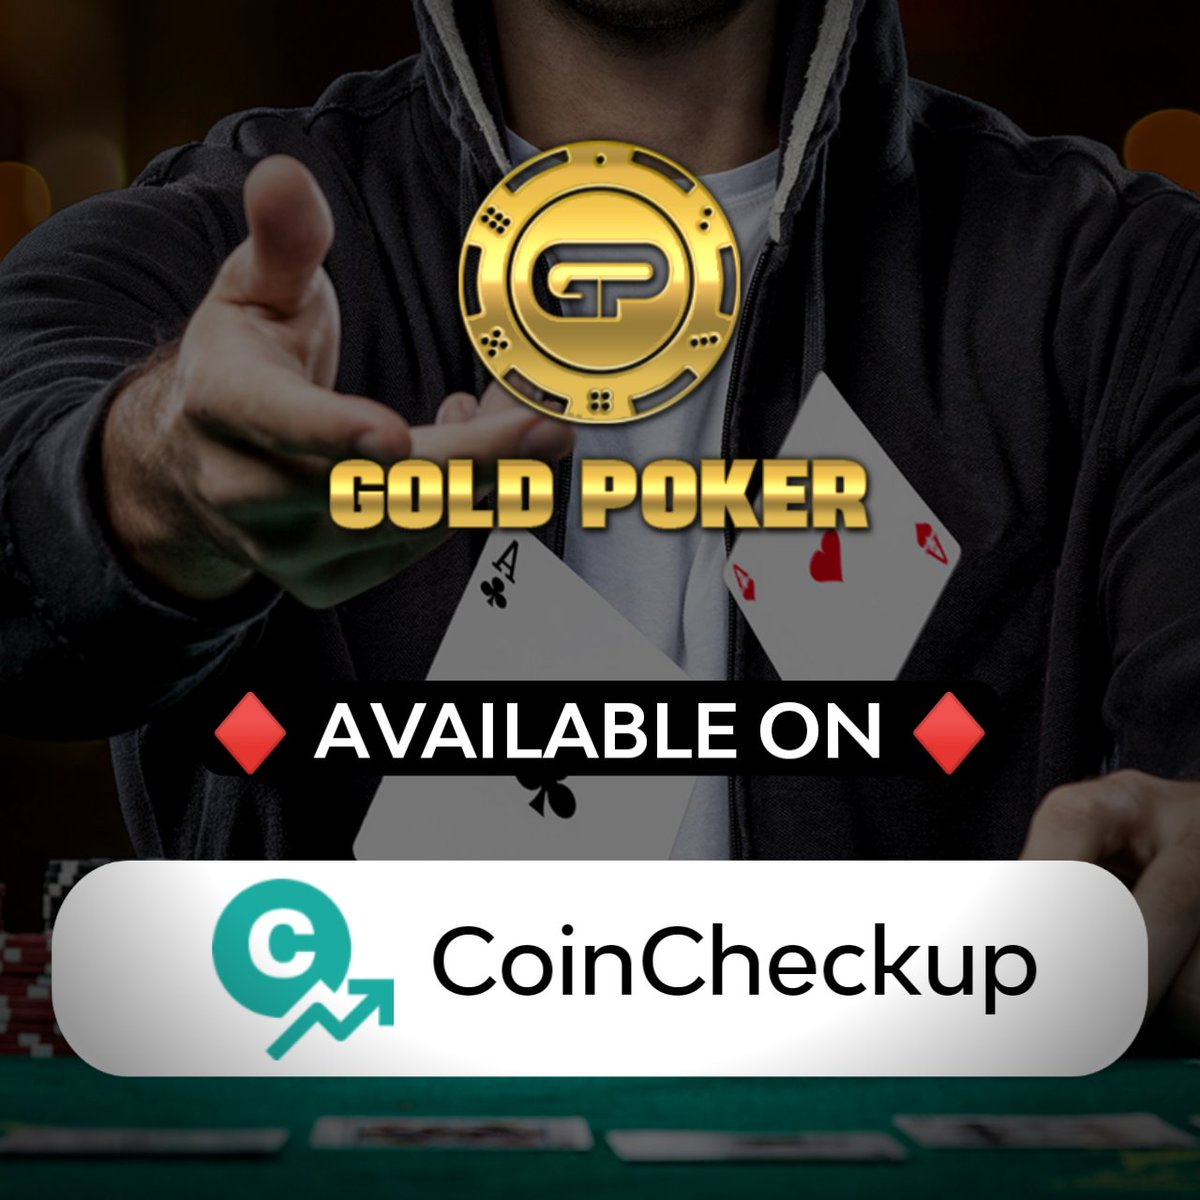 GoldPokercoin photo